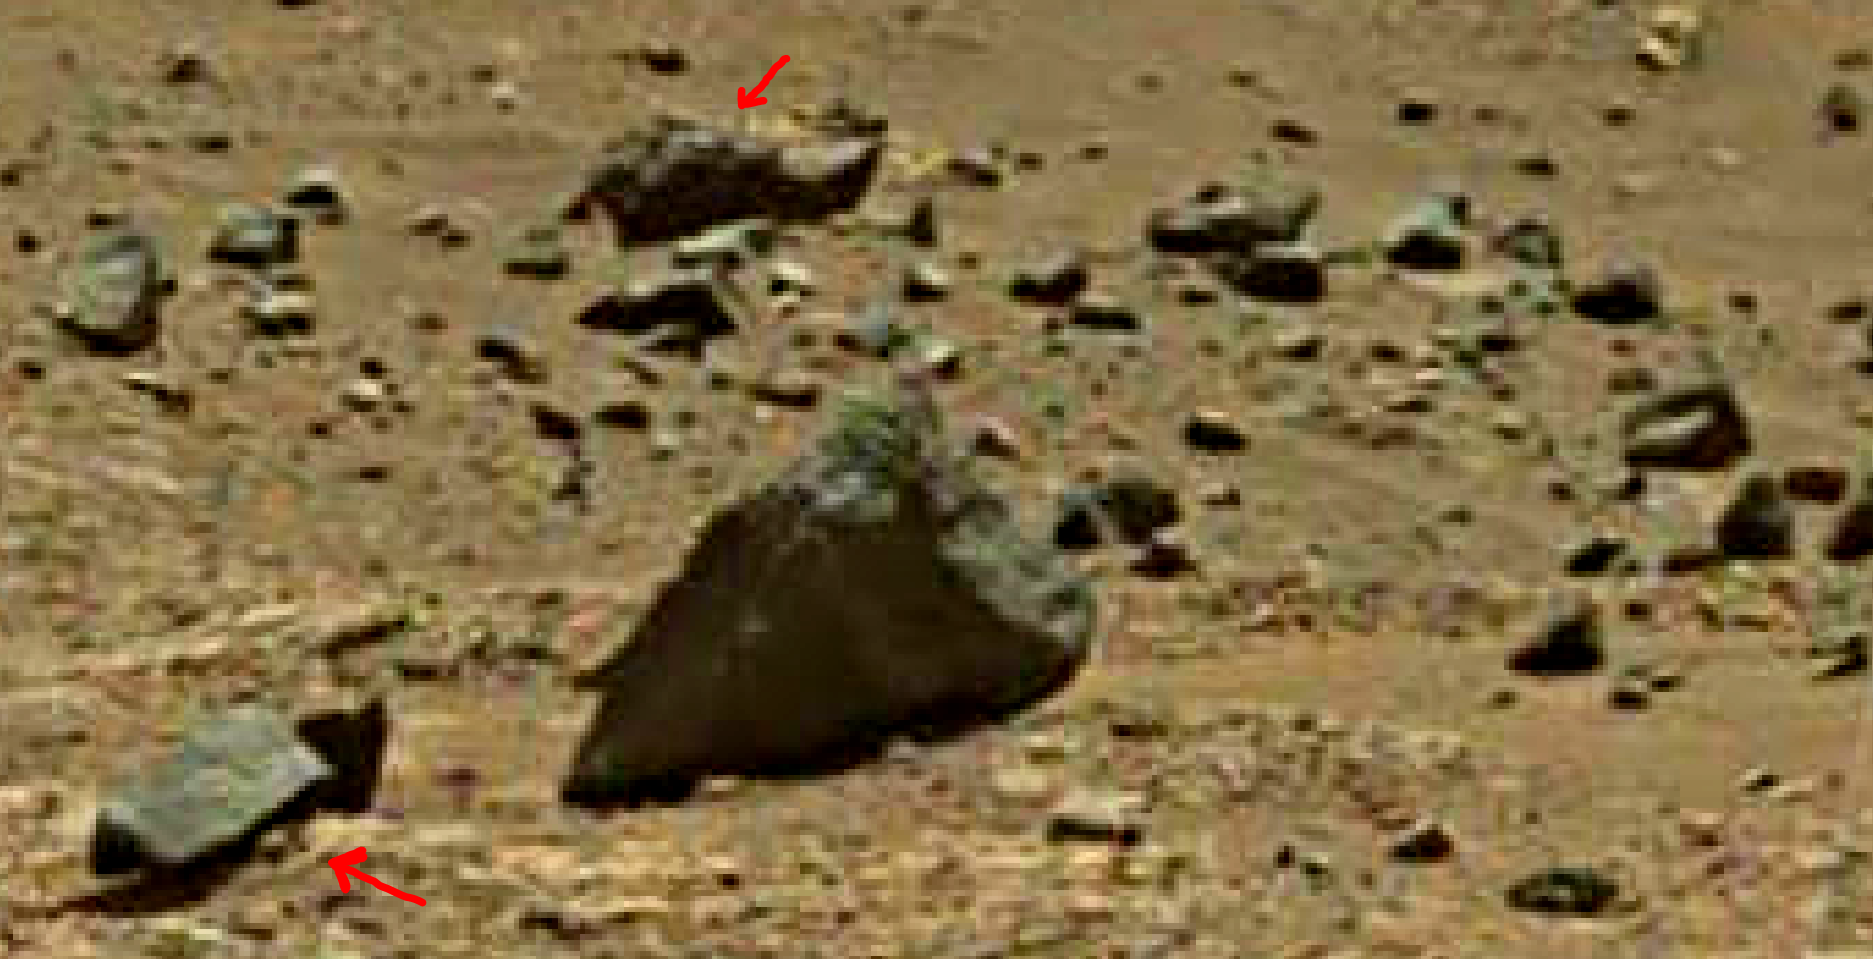 mars sol 1401 anomaly artifacts 11 was life on mars